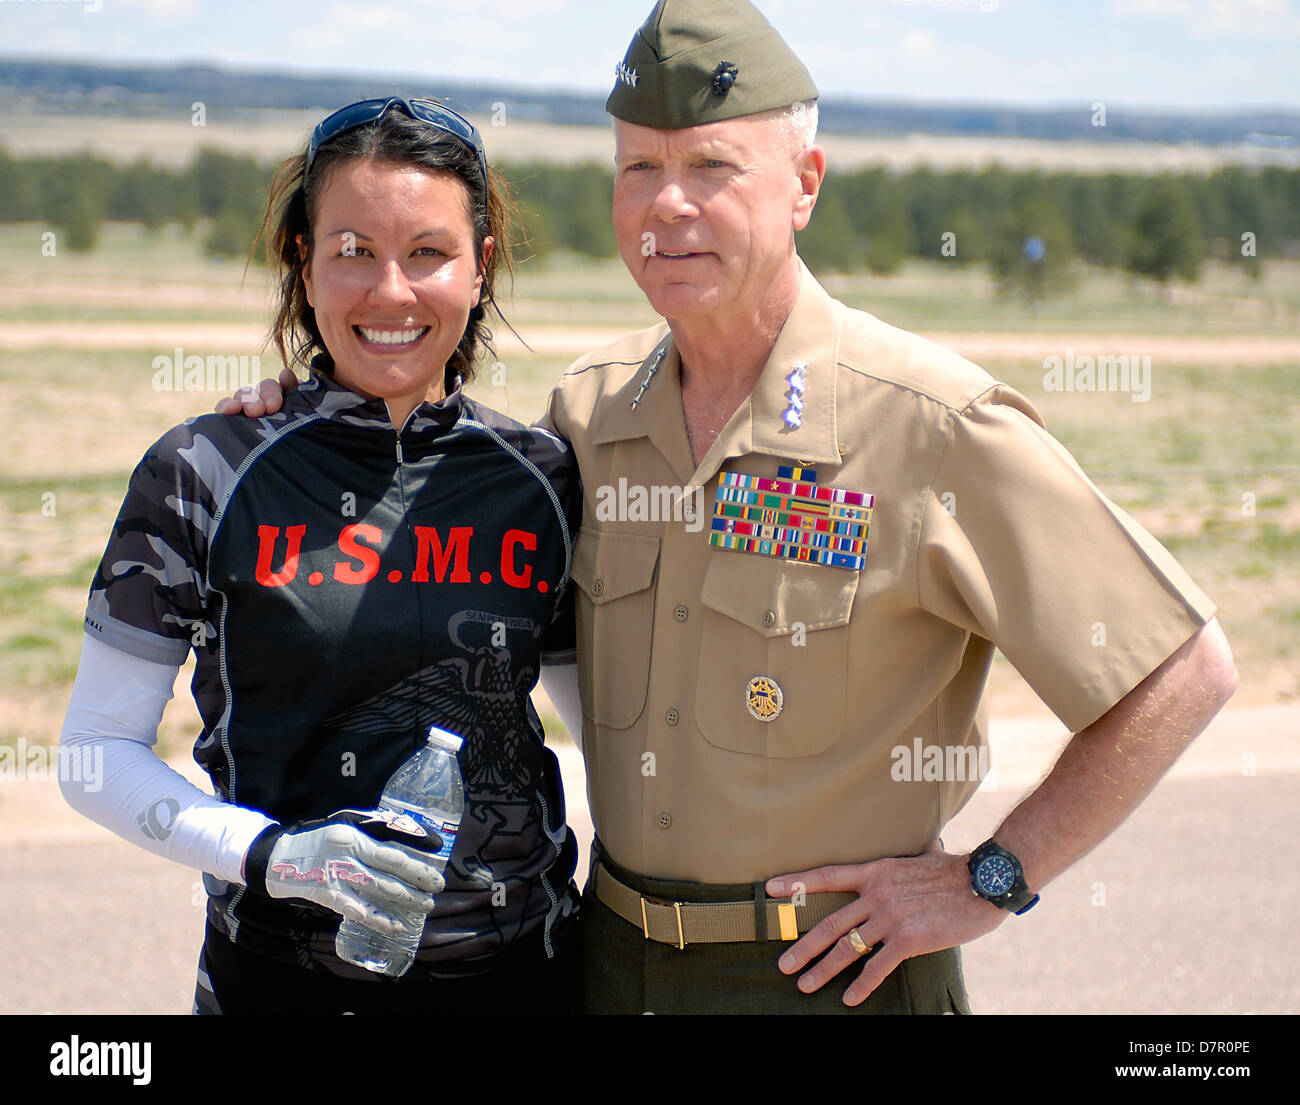 May 12, 2013: Commandant of the Marine Corps, General James F. Amos, congratulates Marine wounded warrior cyclist, Stock Photo